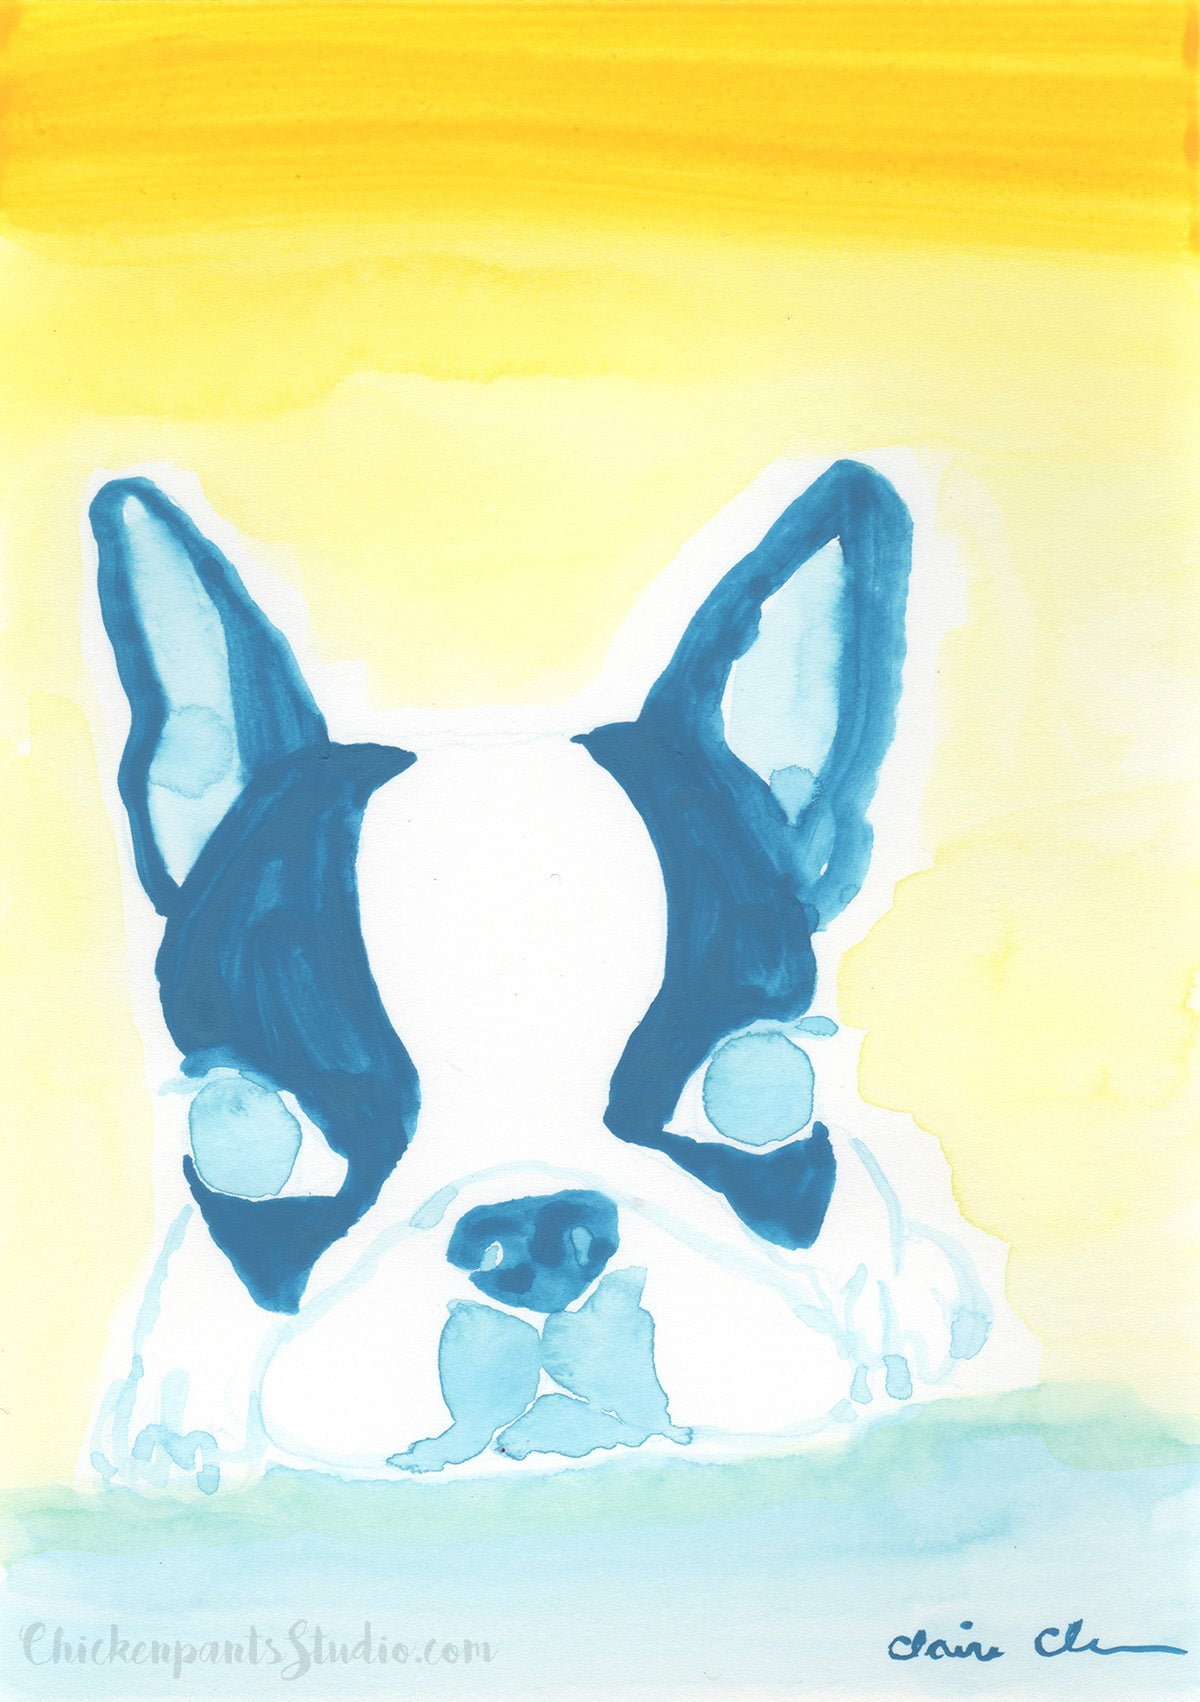 My Sunshine - Original Boston Terrier Painting